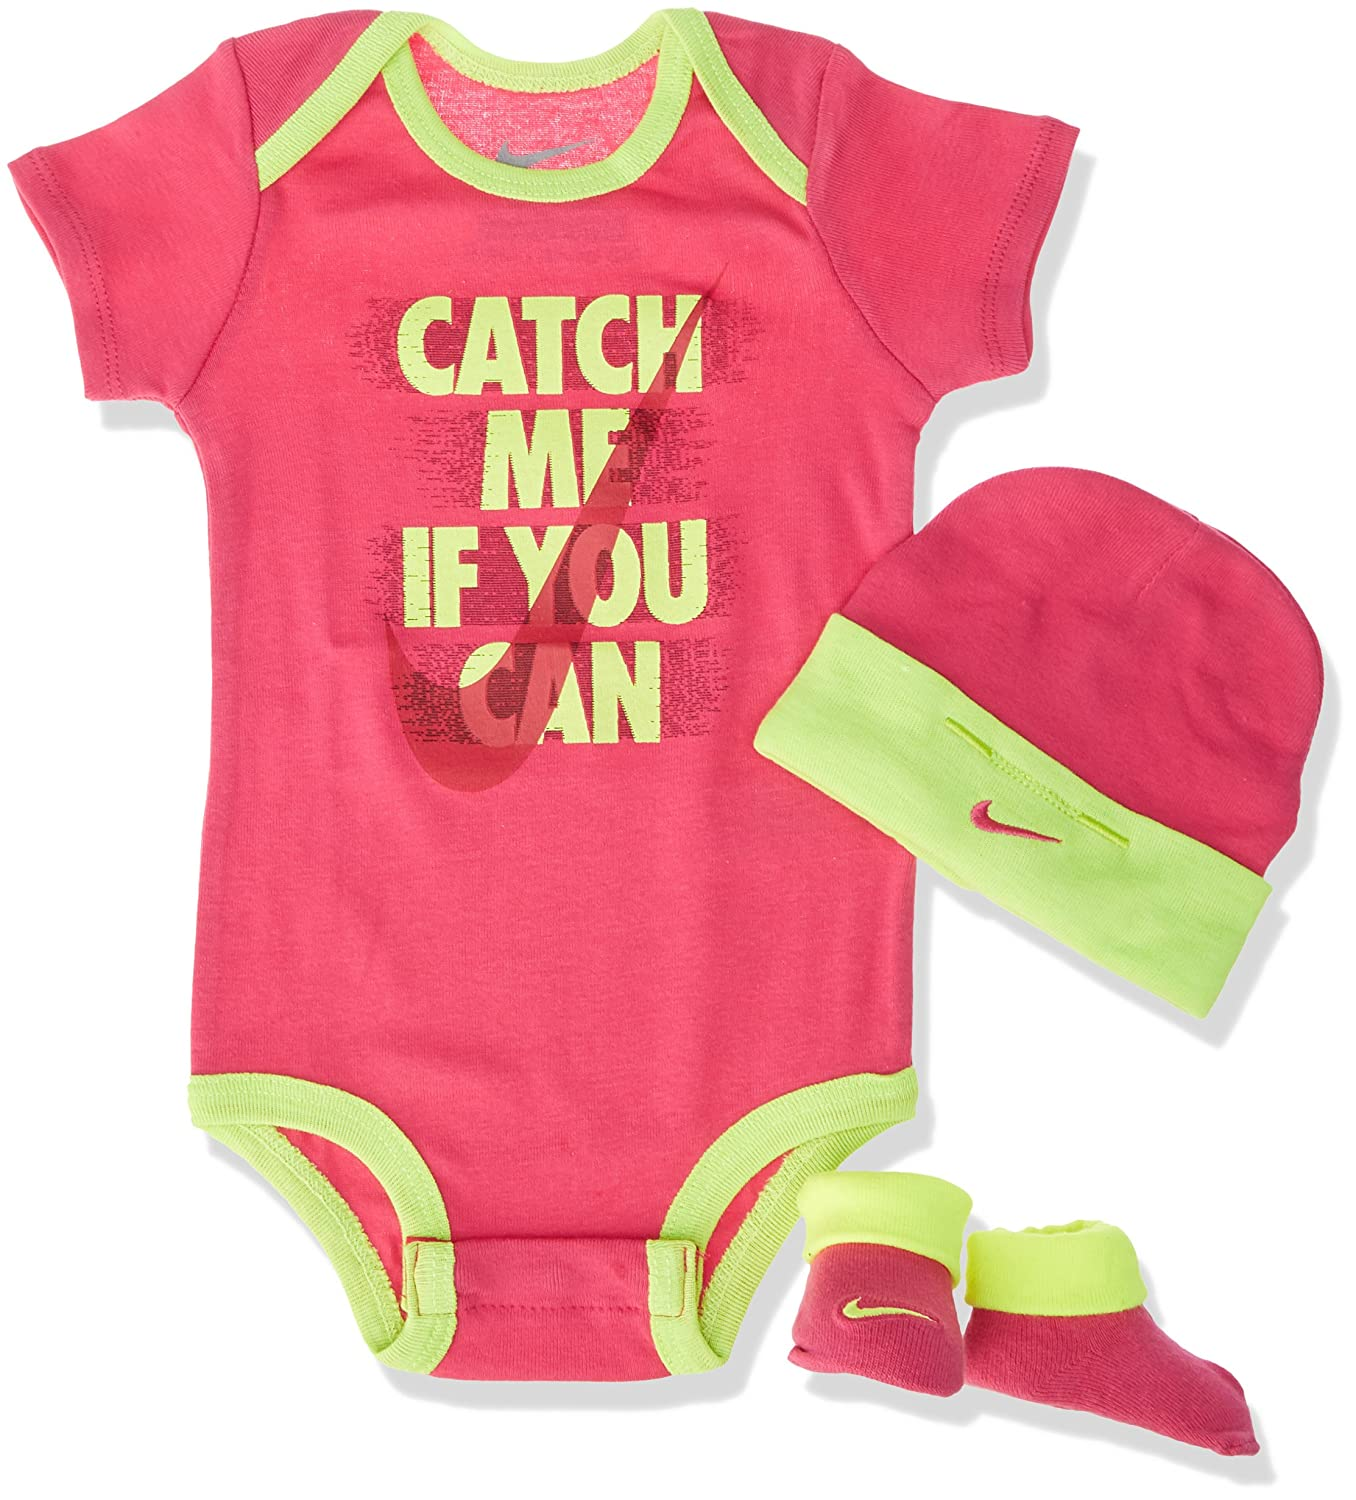 0-6 Monate rosa Nike Catch Me If You Can Baby Body Set